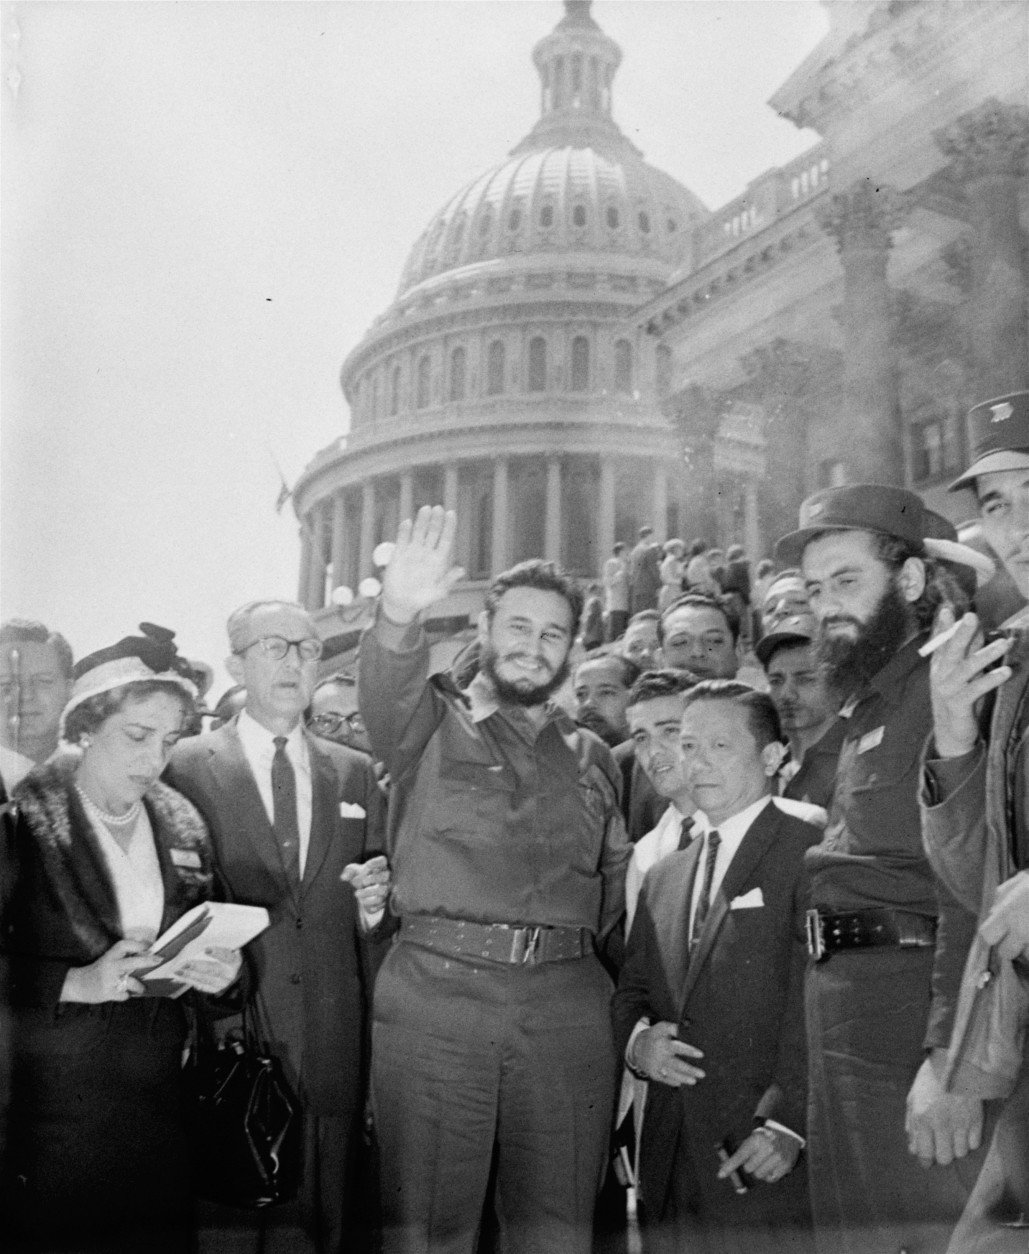 Fidel Castro, fresh from a visit to the Senate Foreign Relations Committee, poses in front of the Capitol today.  The 32-year-old Cuban Prime Minister paid an unheralded visit to the Capitol April 17, 1959 and chatted with members of the committee.  (AP Photo)